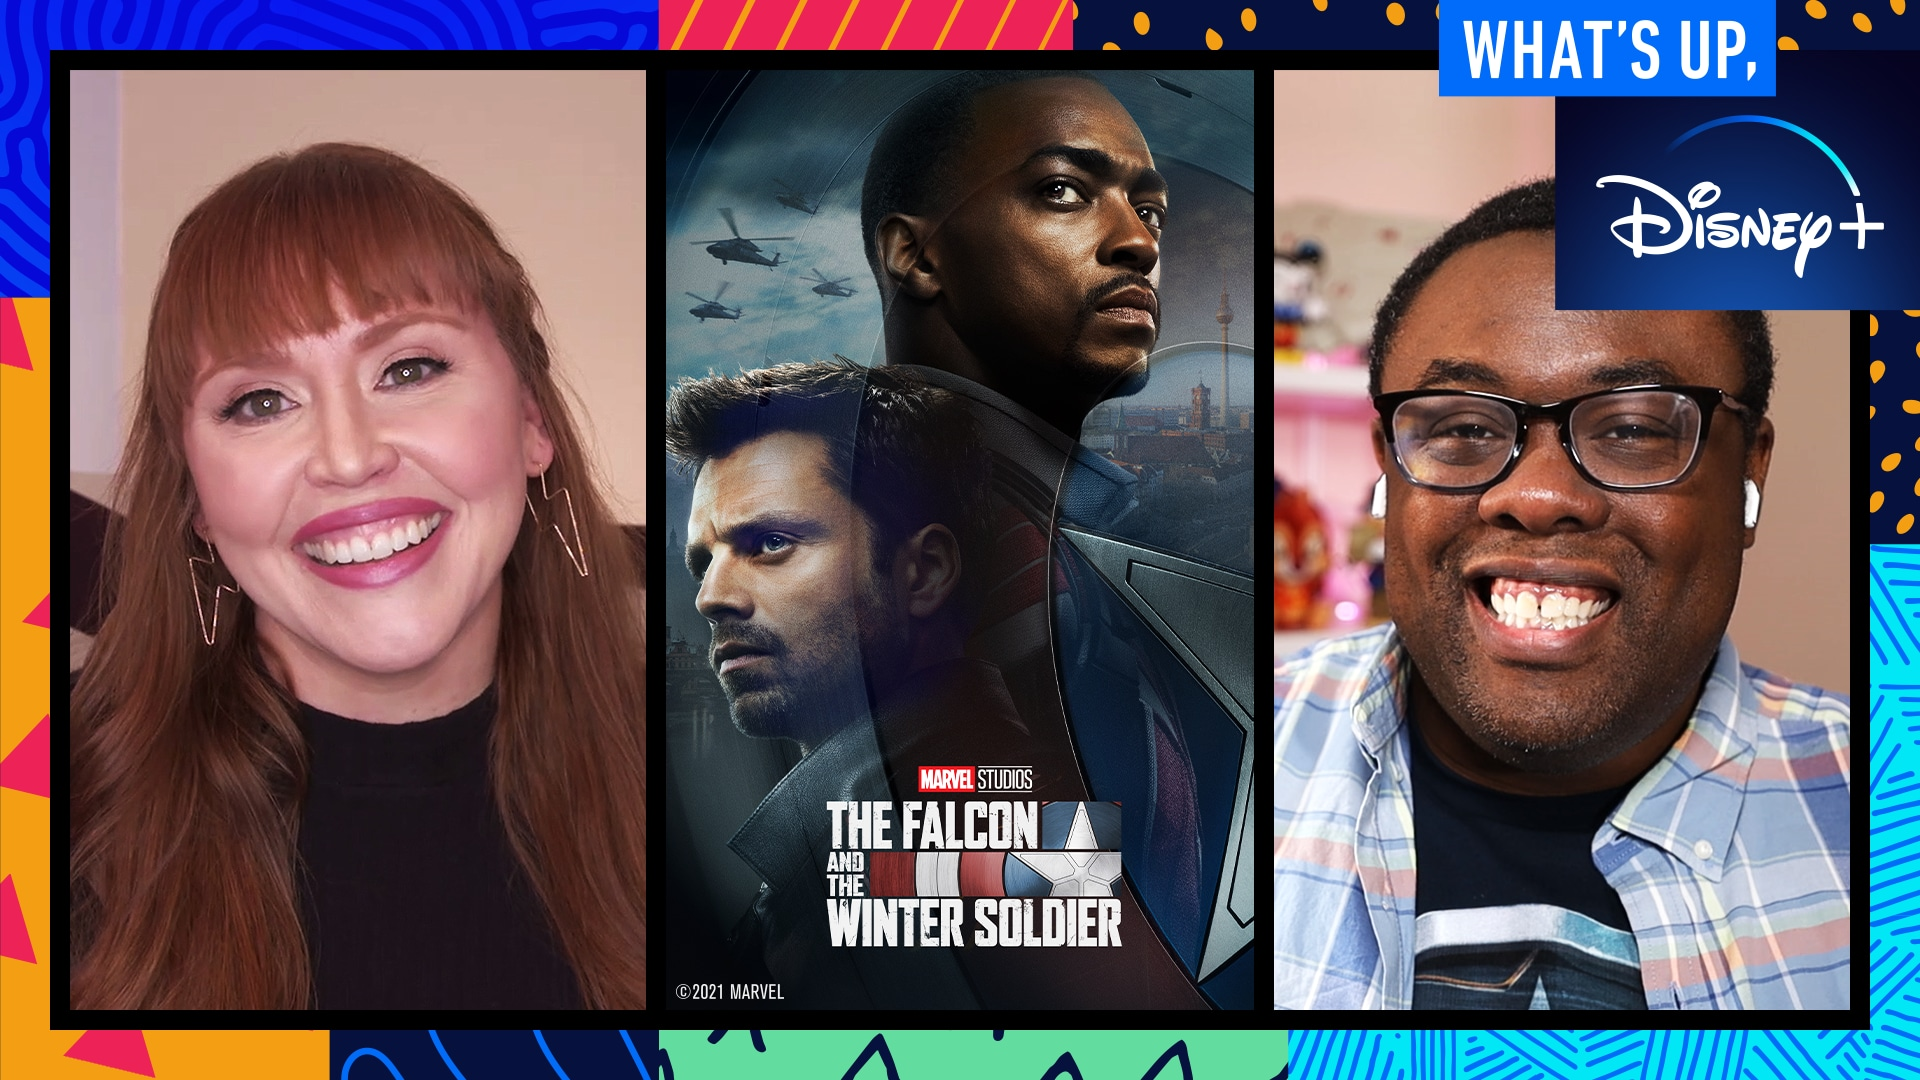 Marvel Studios' The Falcon and the Winter Soldier | What's Up, Disney+ | Episode 20